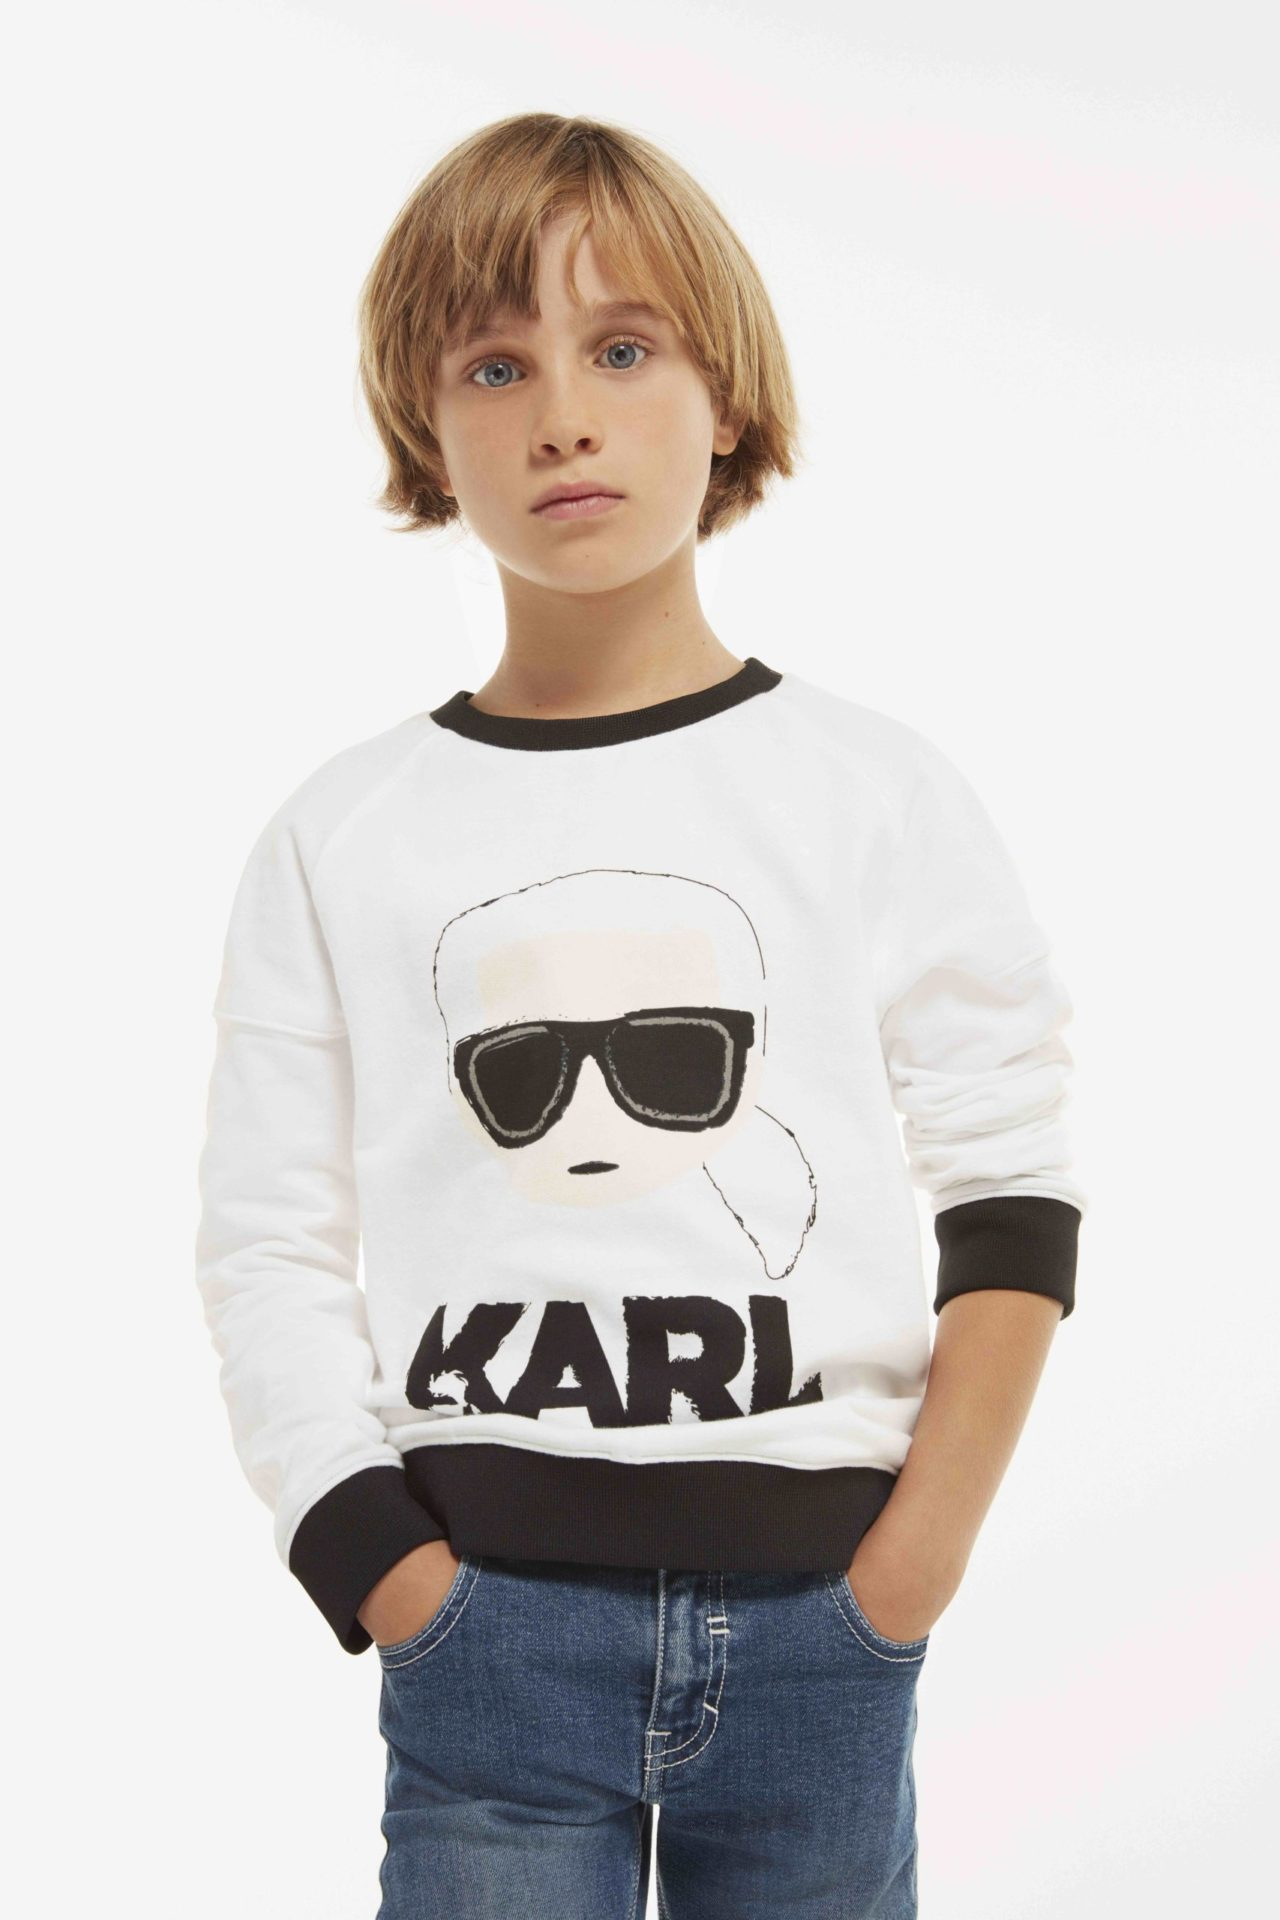 The Karl Lagerfeld kids collection features the signature silhouette of the incredible designer